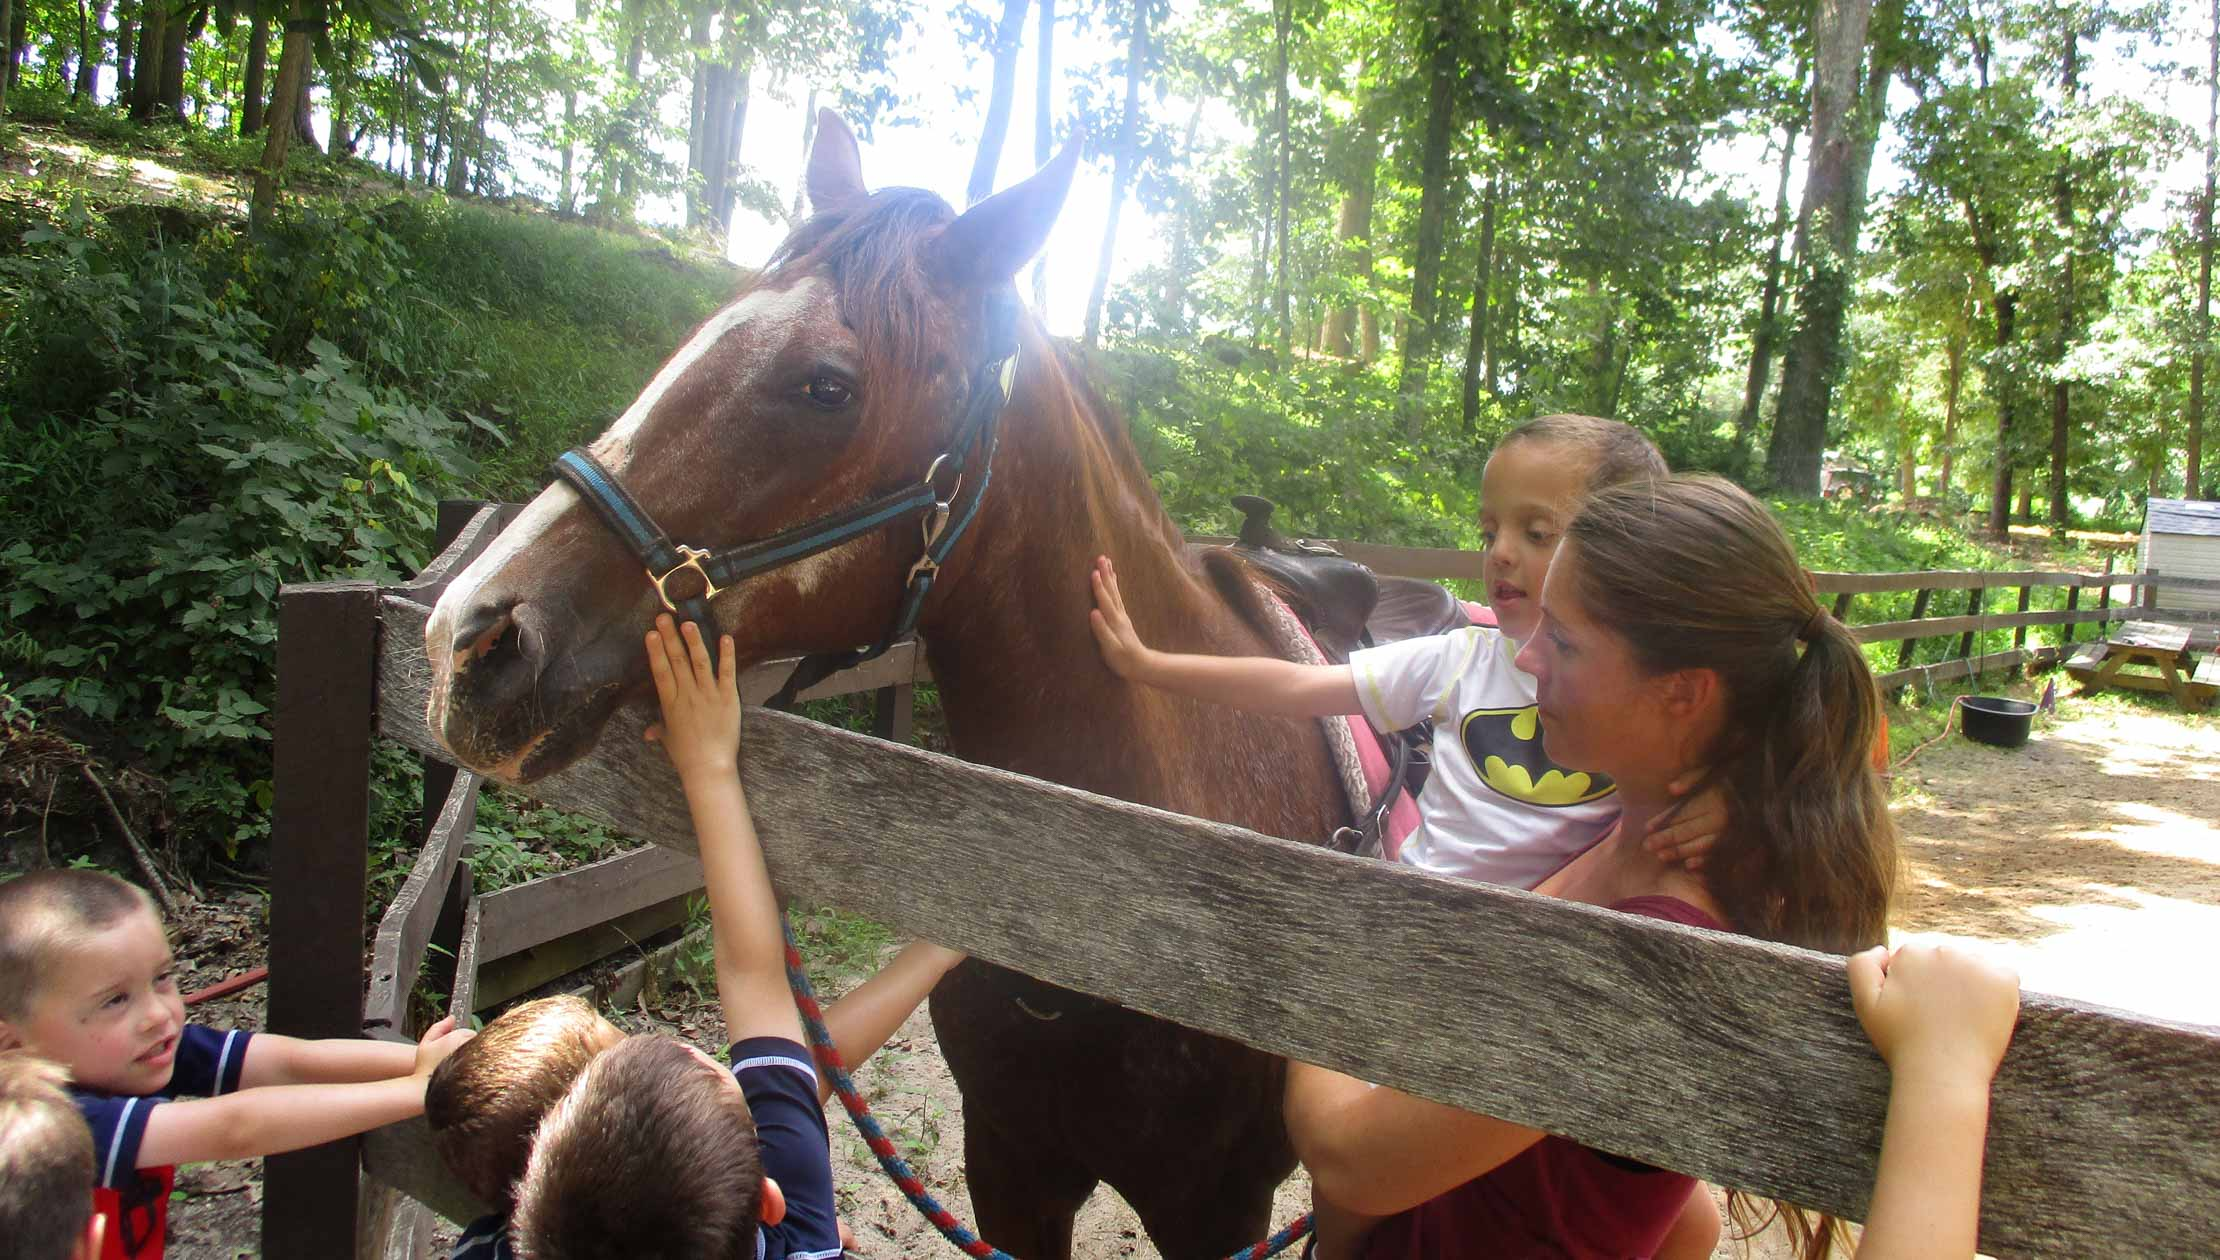 Kids and staff petting a horse